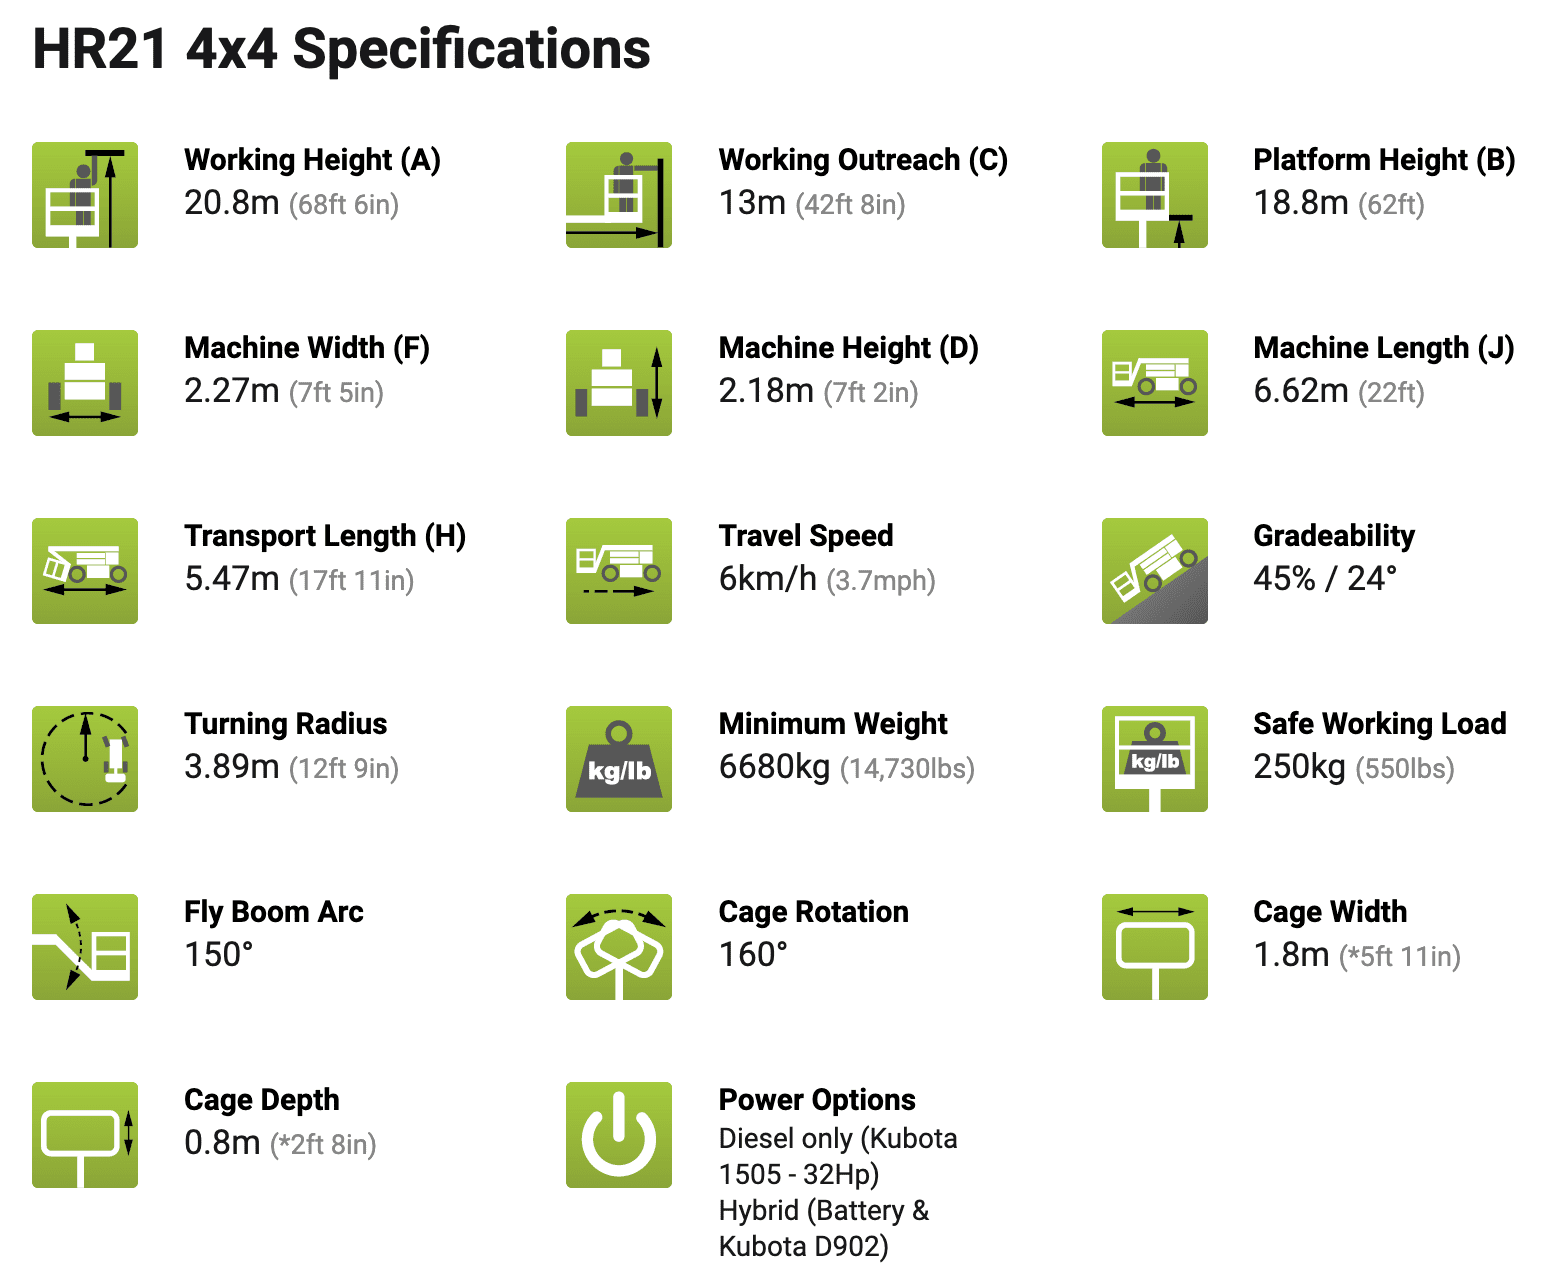 specifications HR21